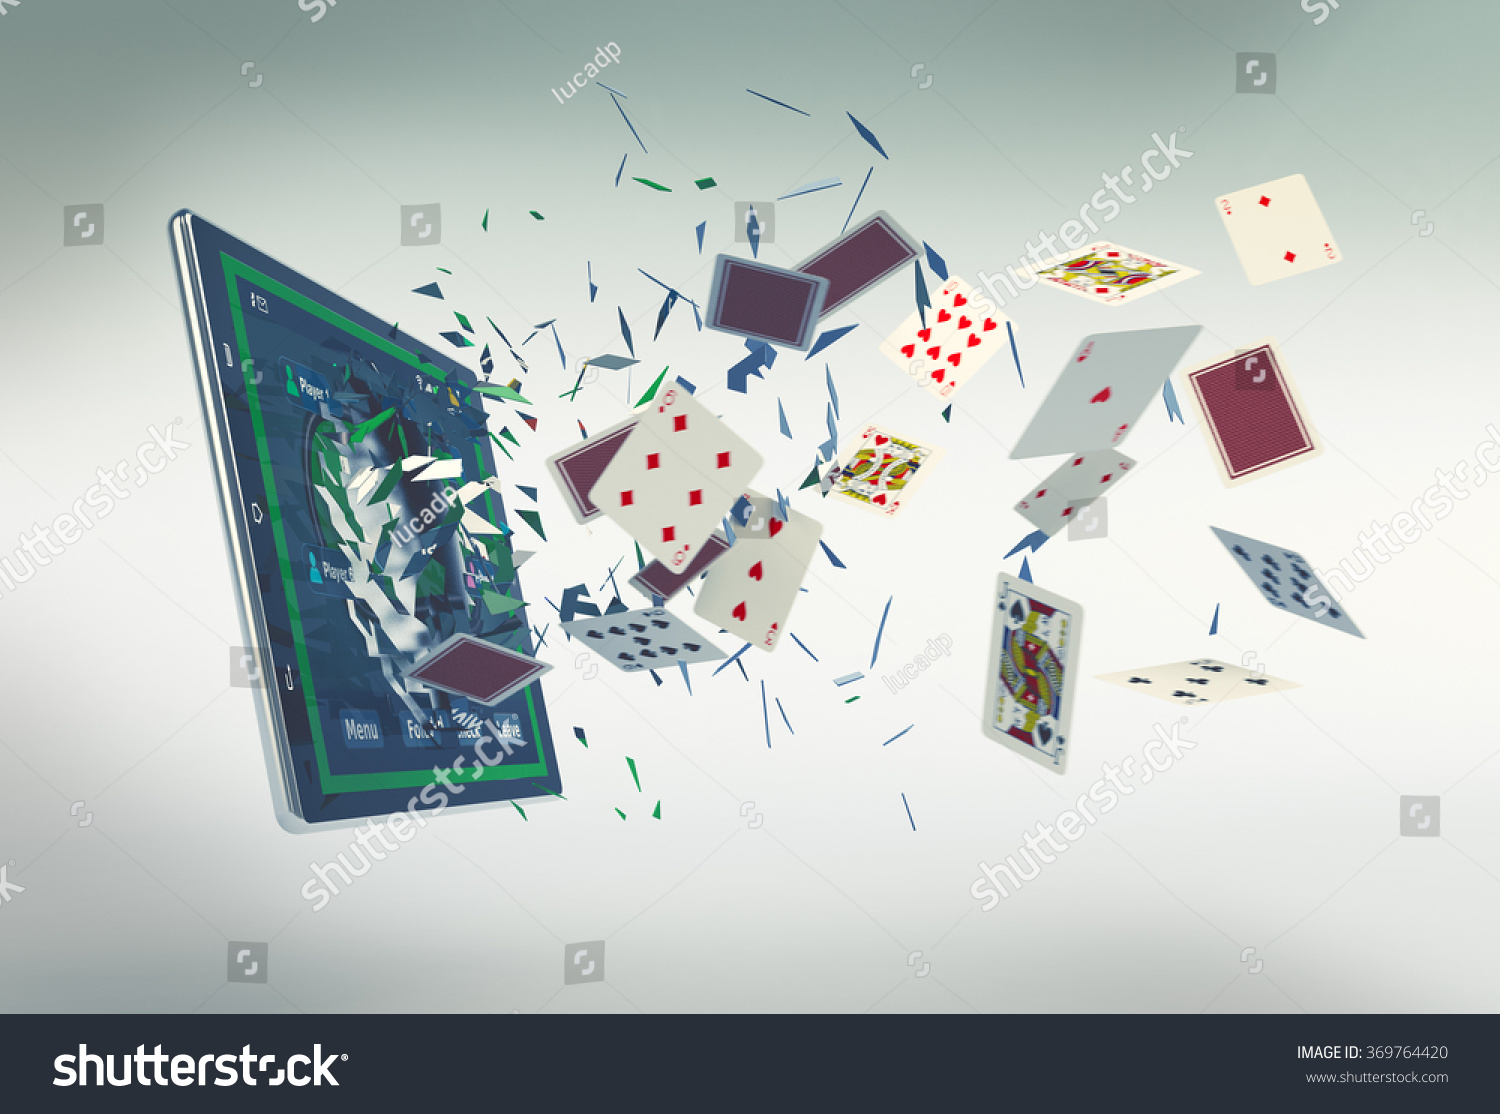 Tablet pc with a poker app and poker chips coming out by breaking.